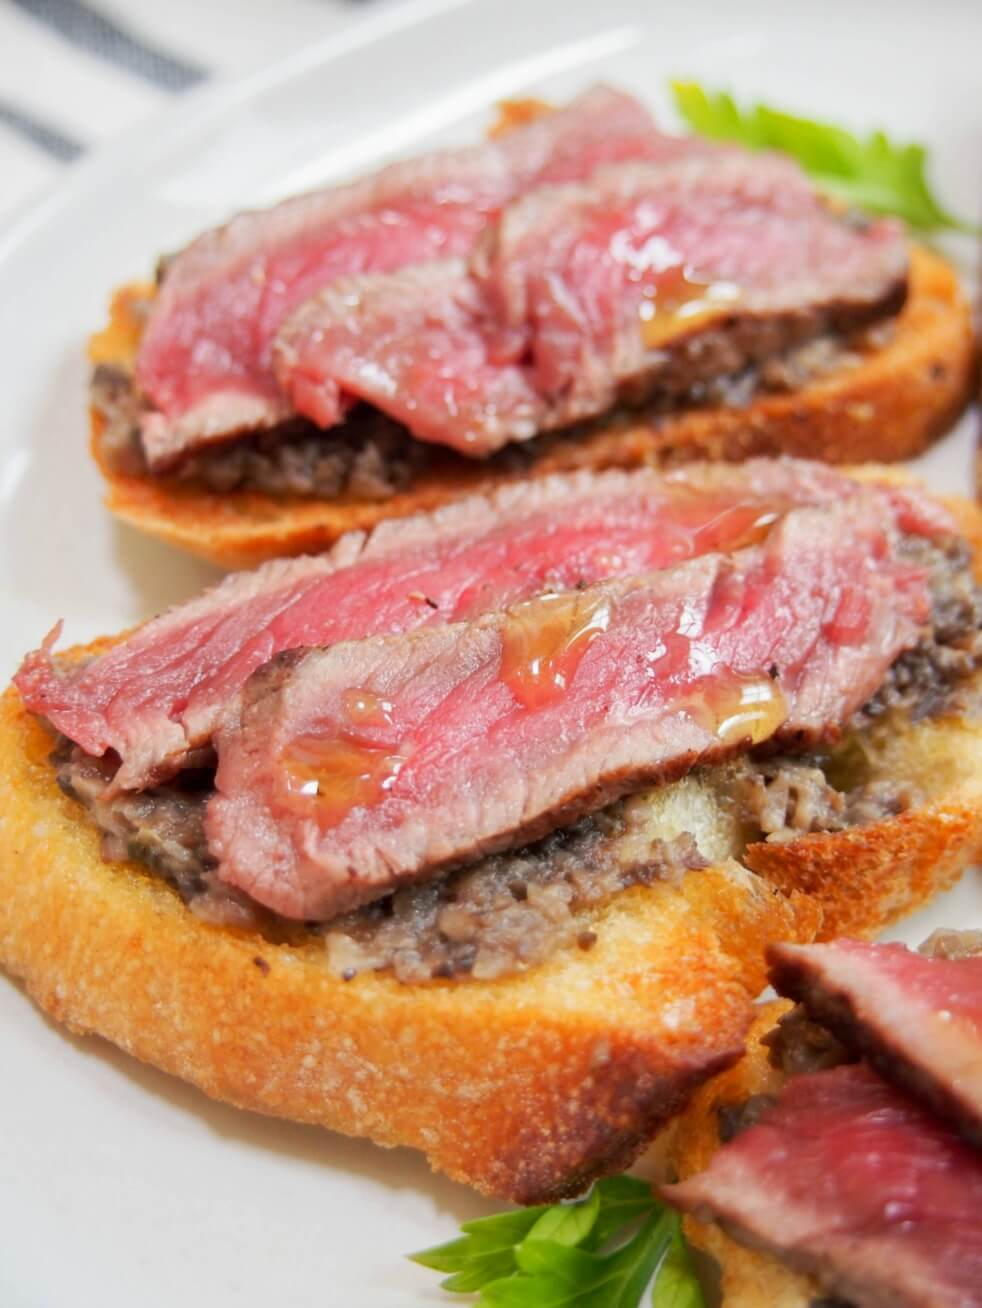 Steak crostini with mushroom pate and truffle oil - a delicious appetizer perfect for enteretaining